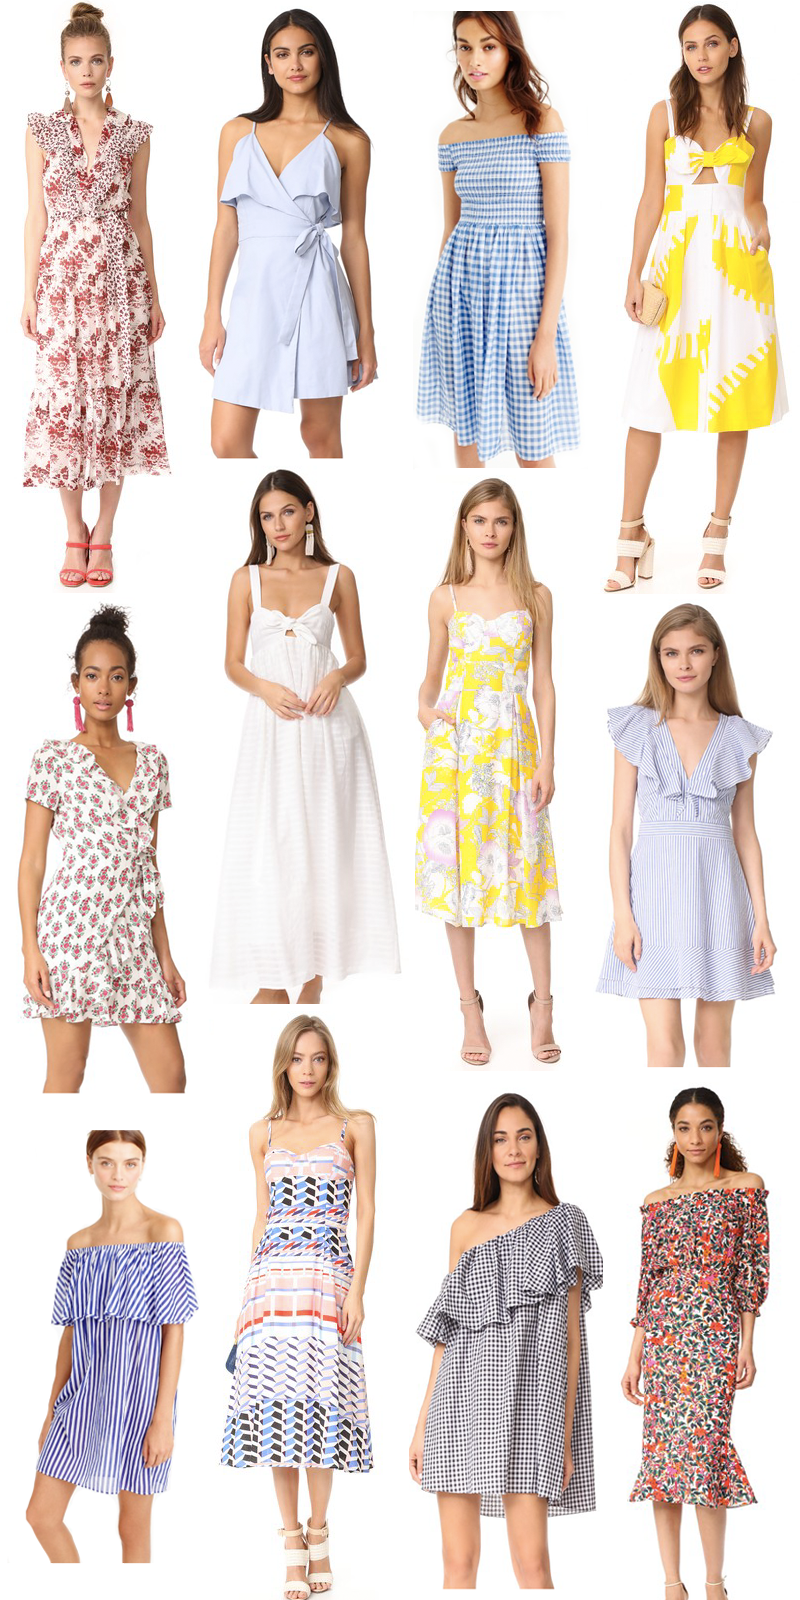 The dress and beyond - 12 Dresses For Memorial Day And Beyond